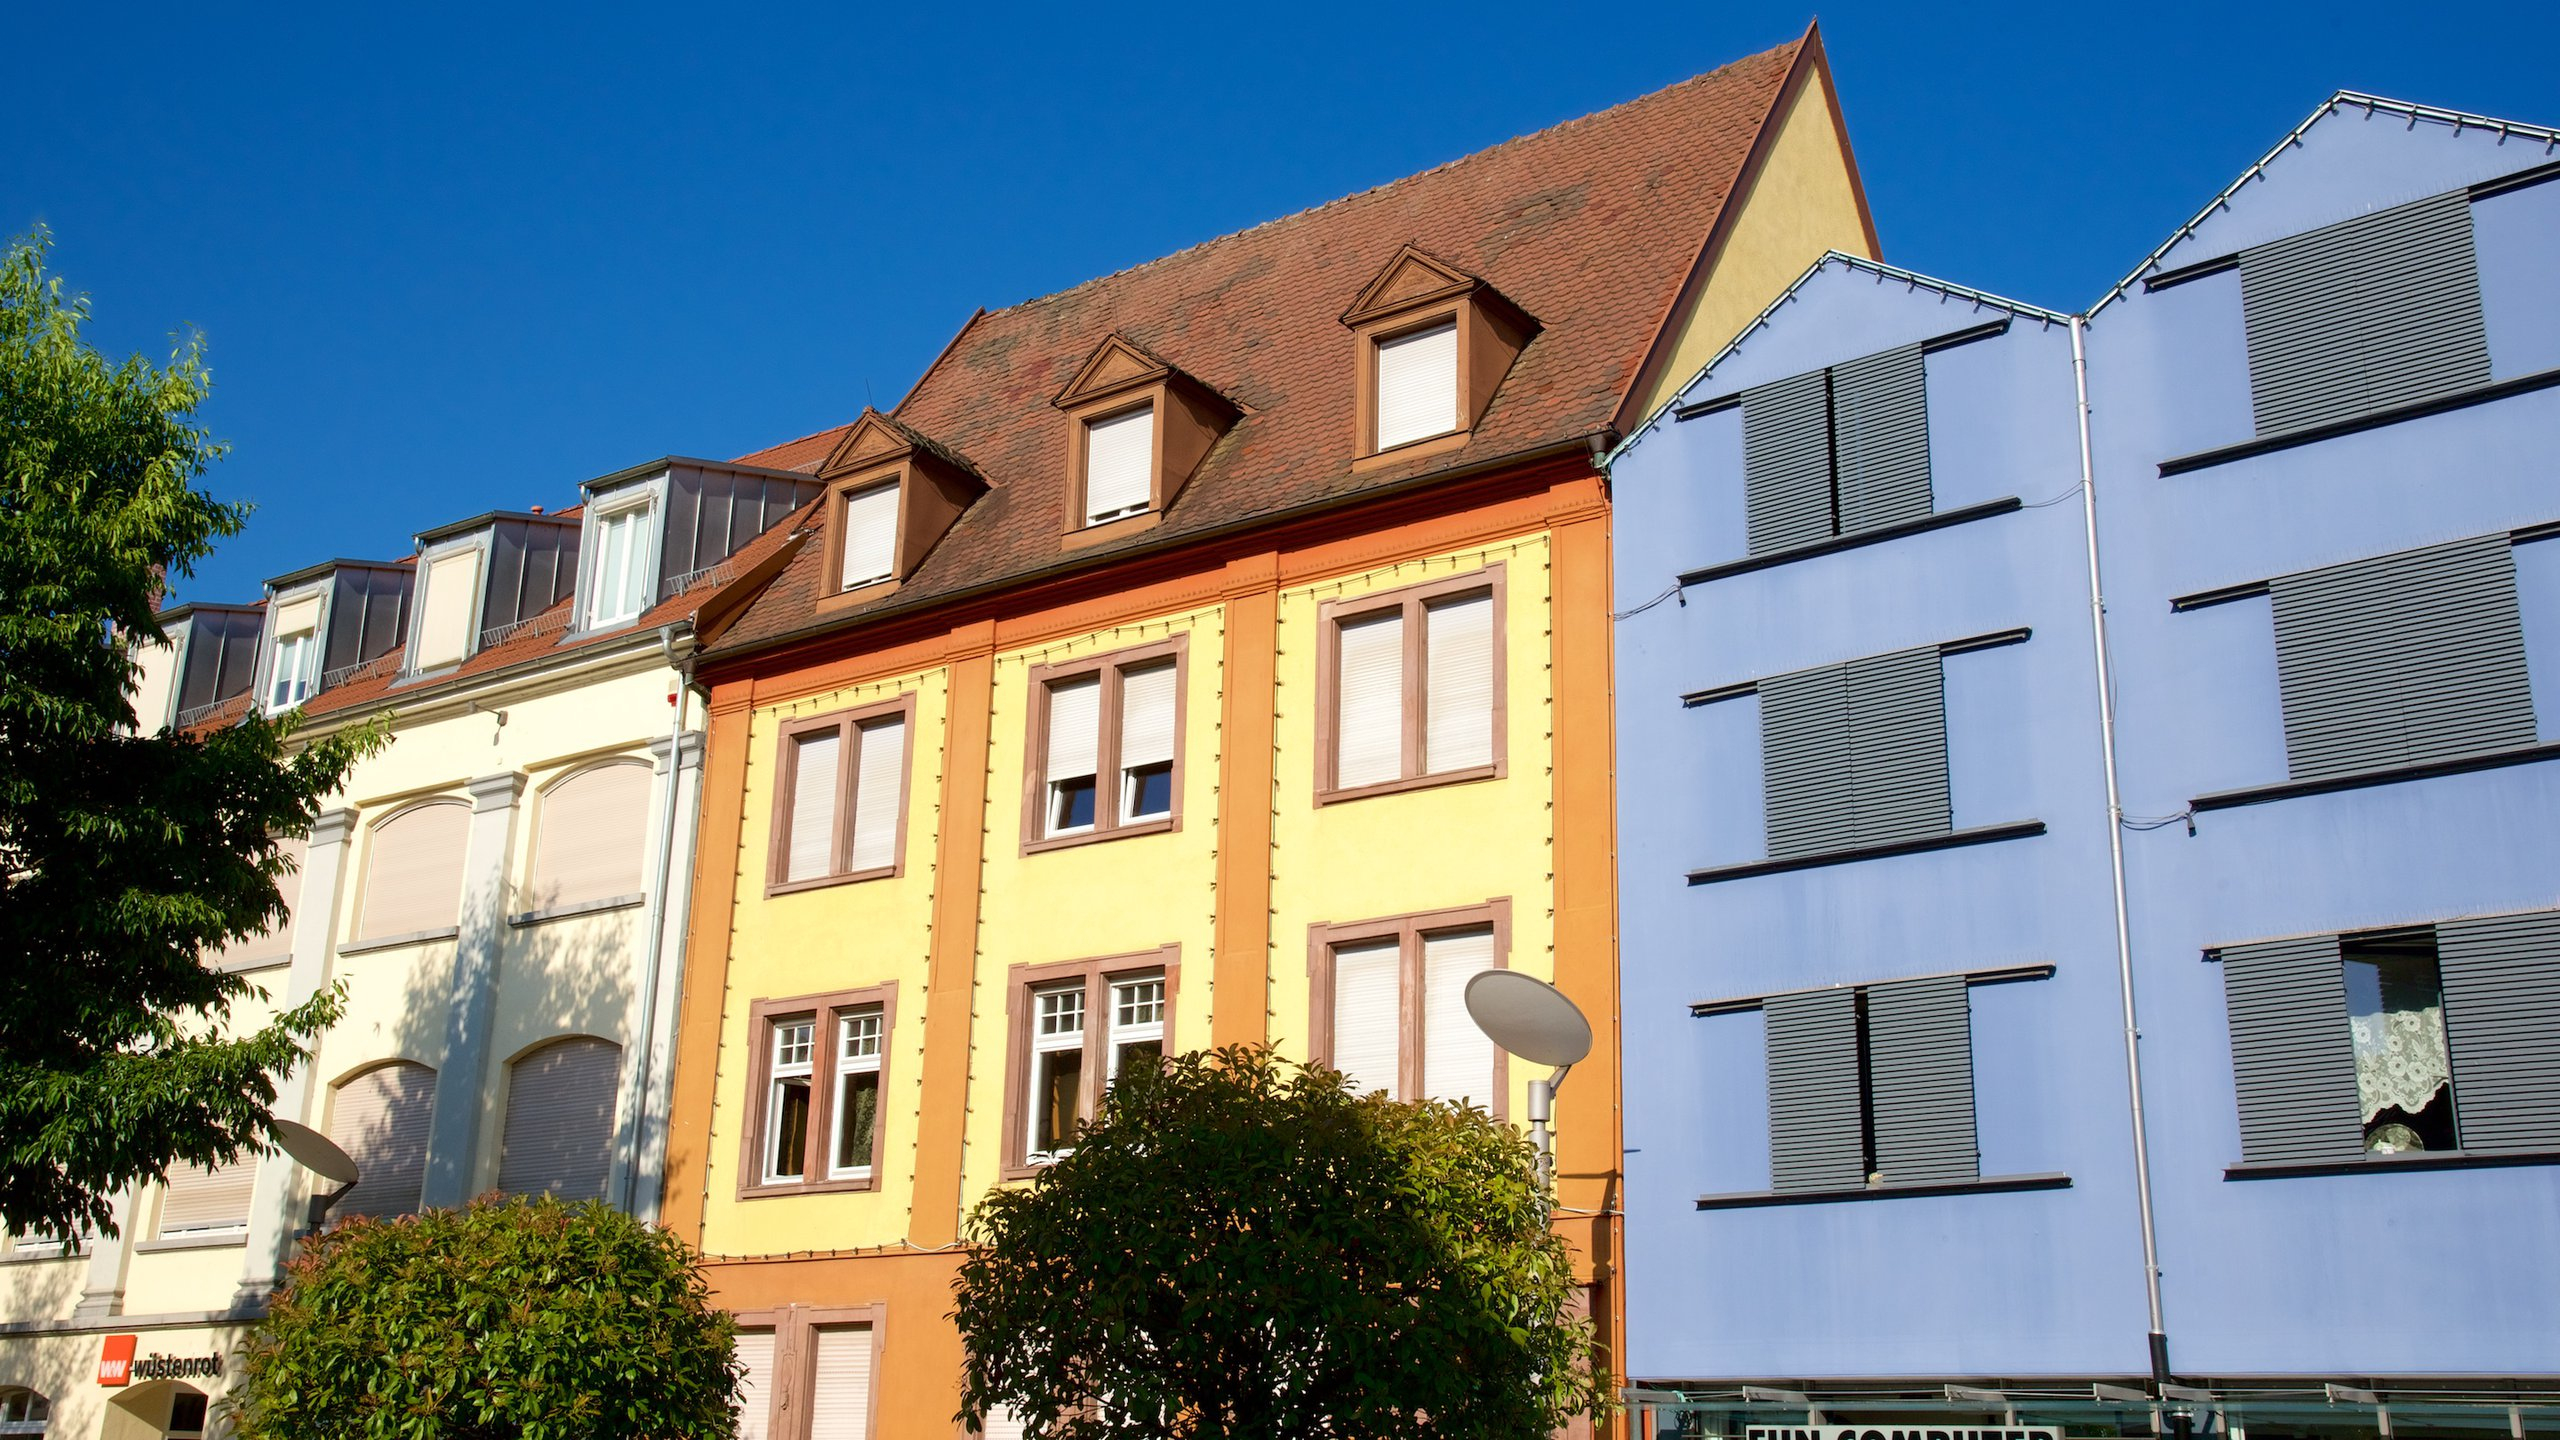 Maison Close Offenburg | Ventana Blog pour Maison Amour Offenburg